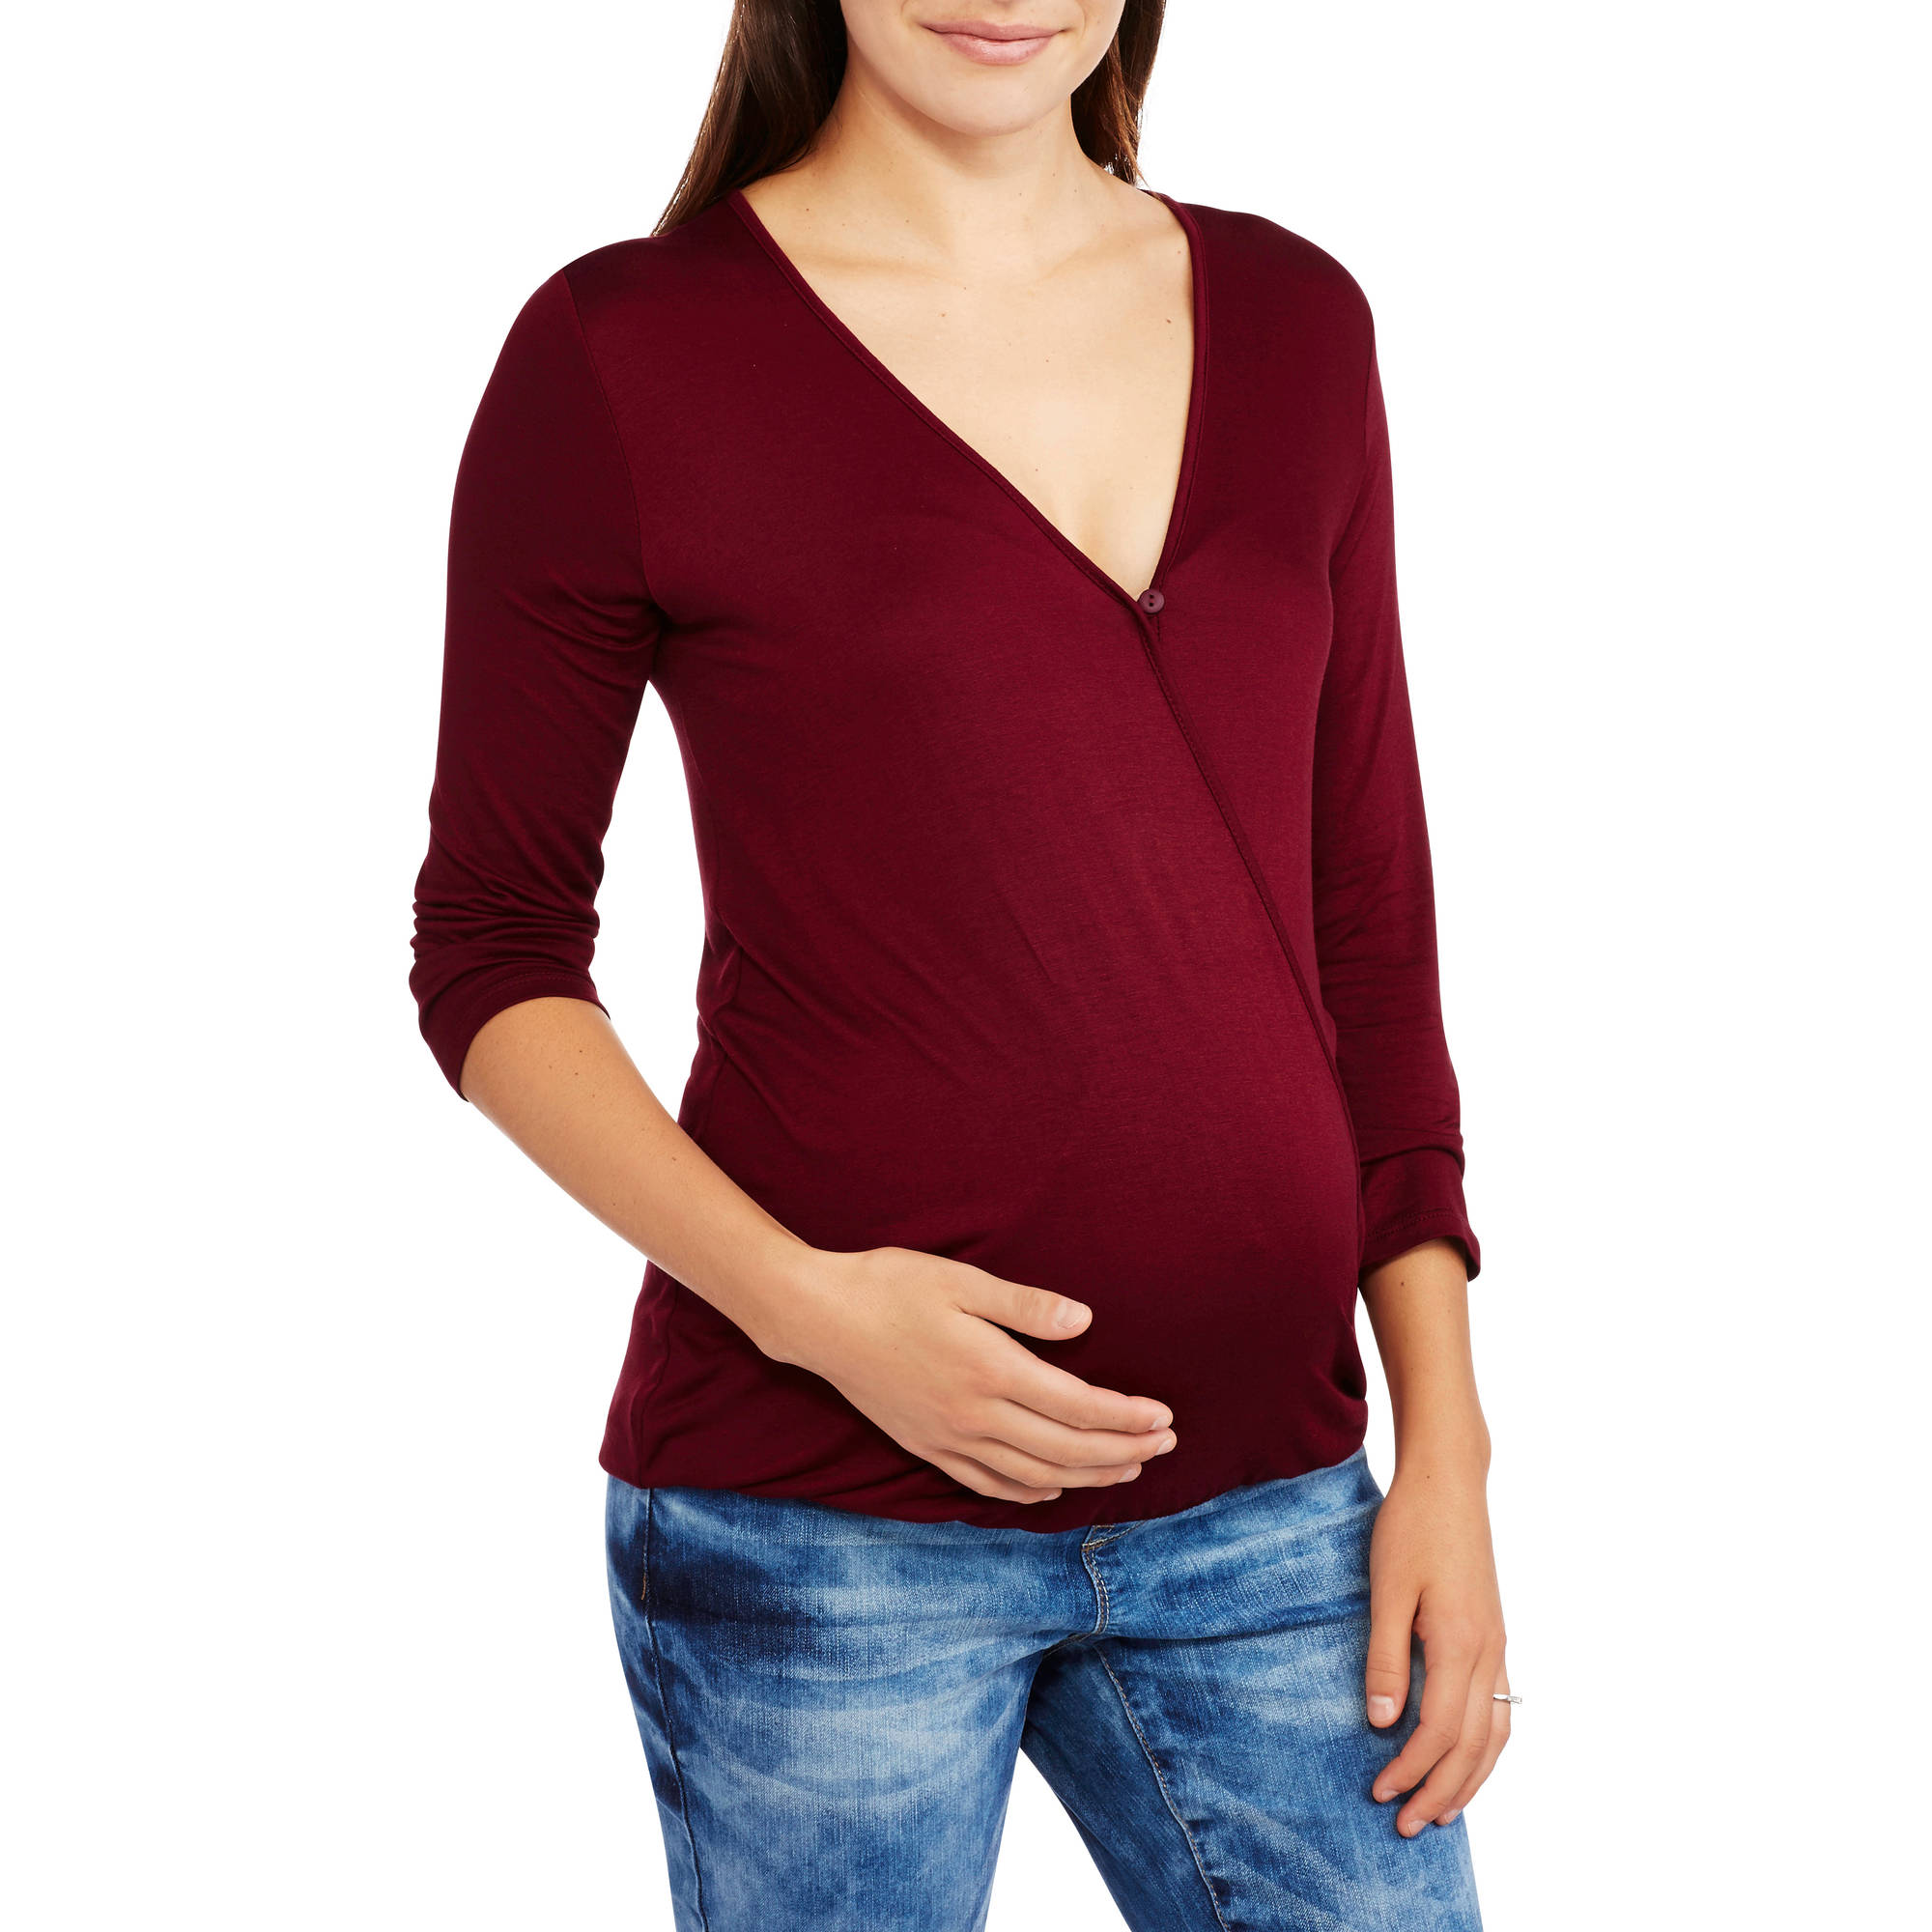 Maternity 3/4 Sleeve Cross Front Nursing Top